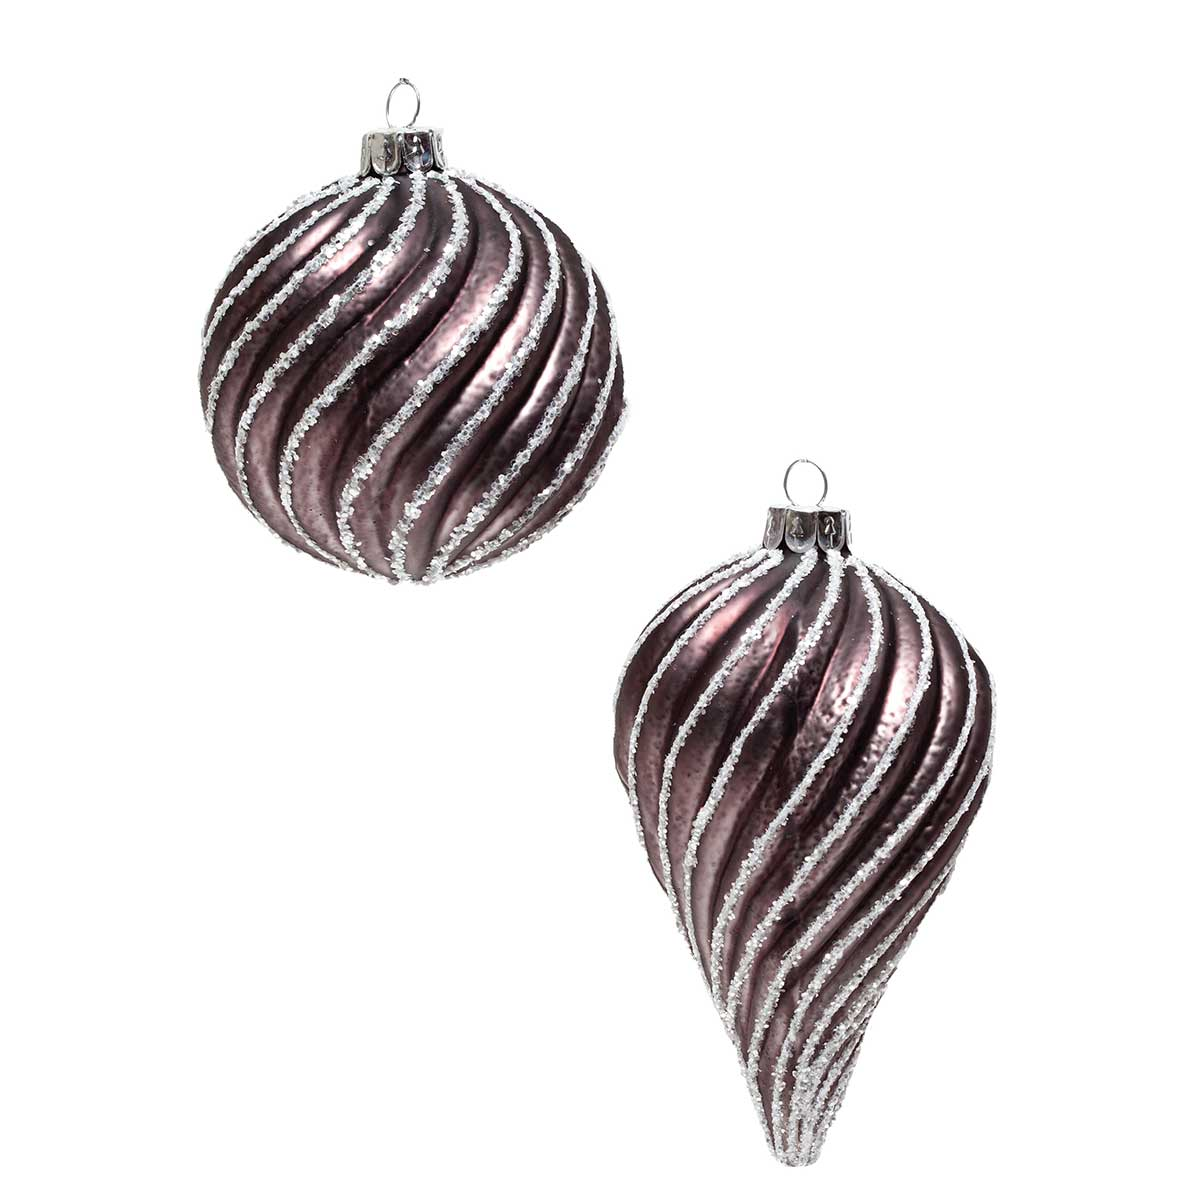 "TAUPE GLASS SWIRL ORNAMENT 4"" TEARDROP/BALL v22"